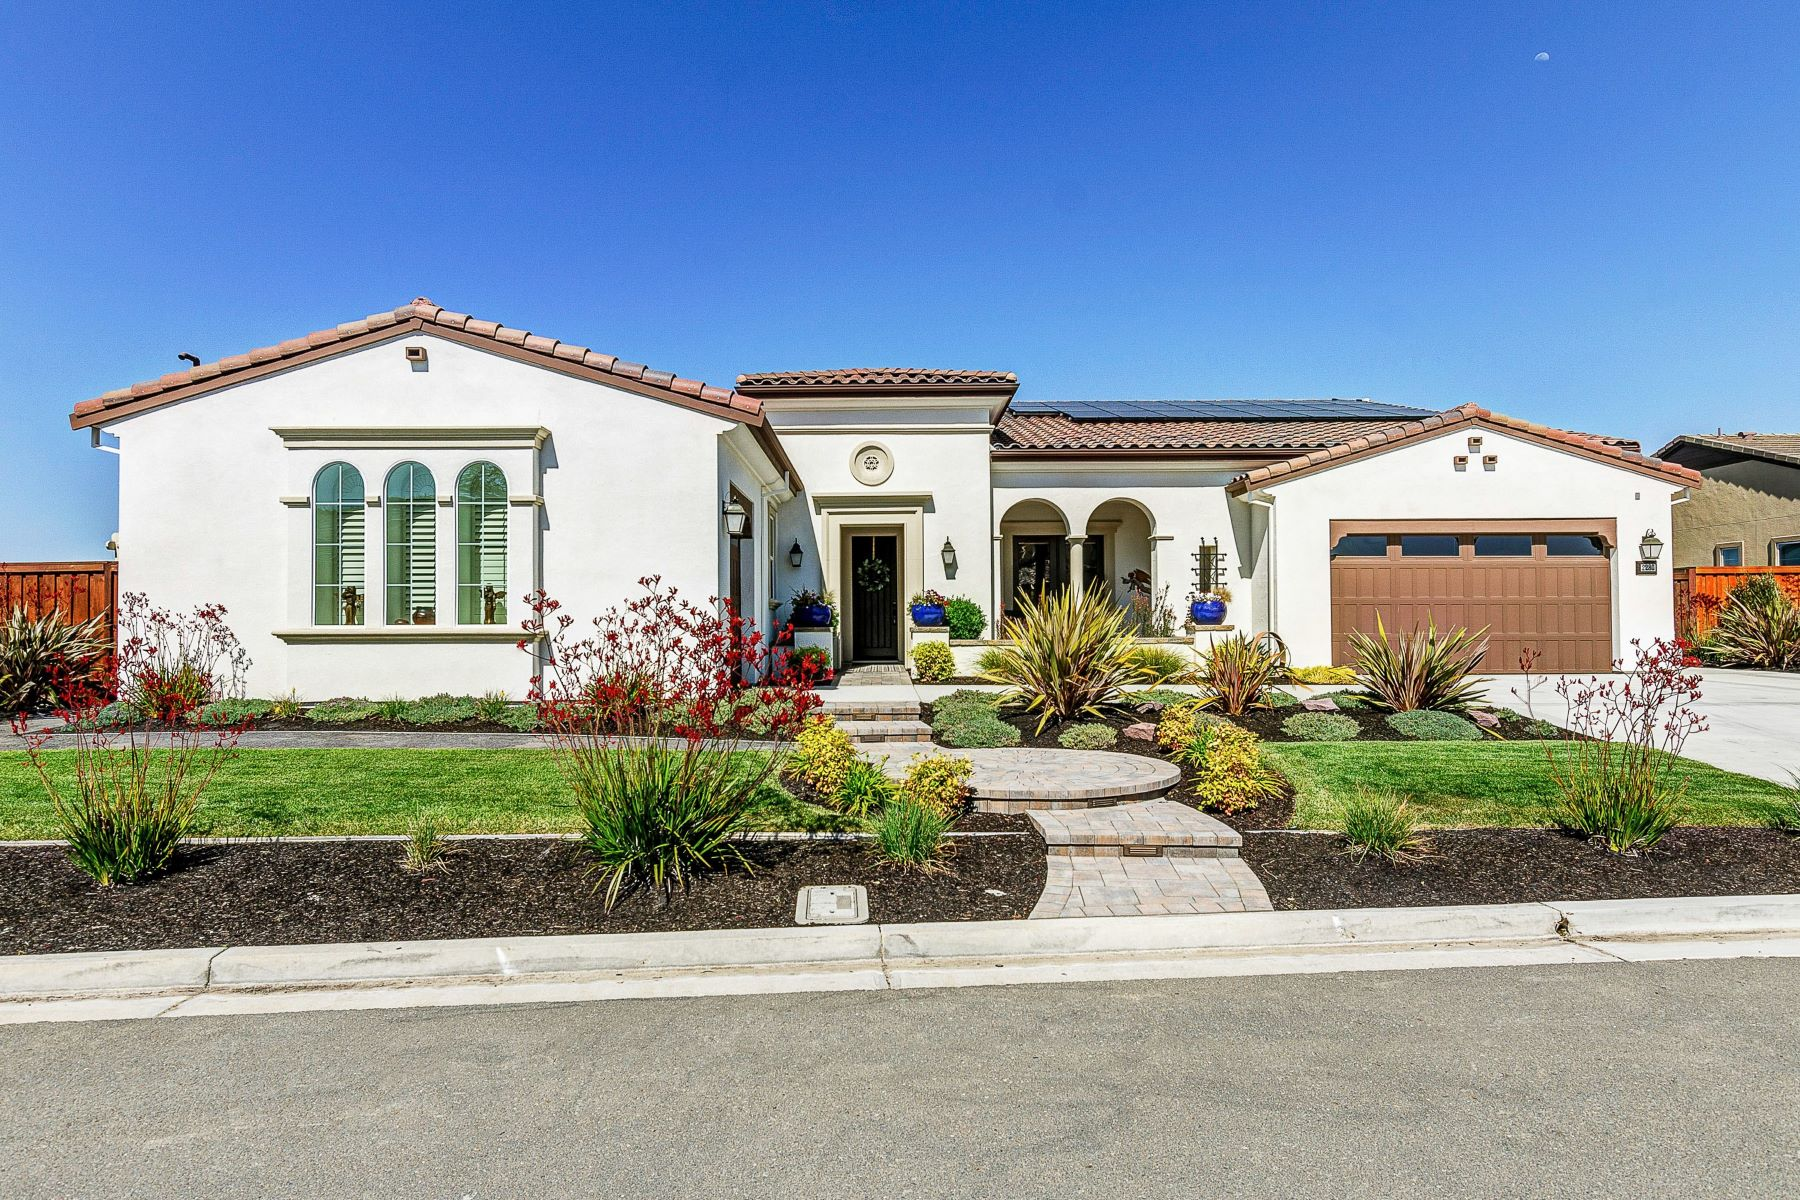 Single Family Homes for Sale at Expansive Country Estate 2280 Reserve Drive Brentwood, California 94513 United States